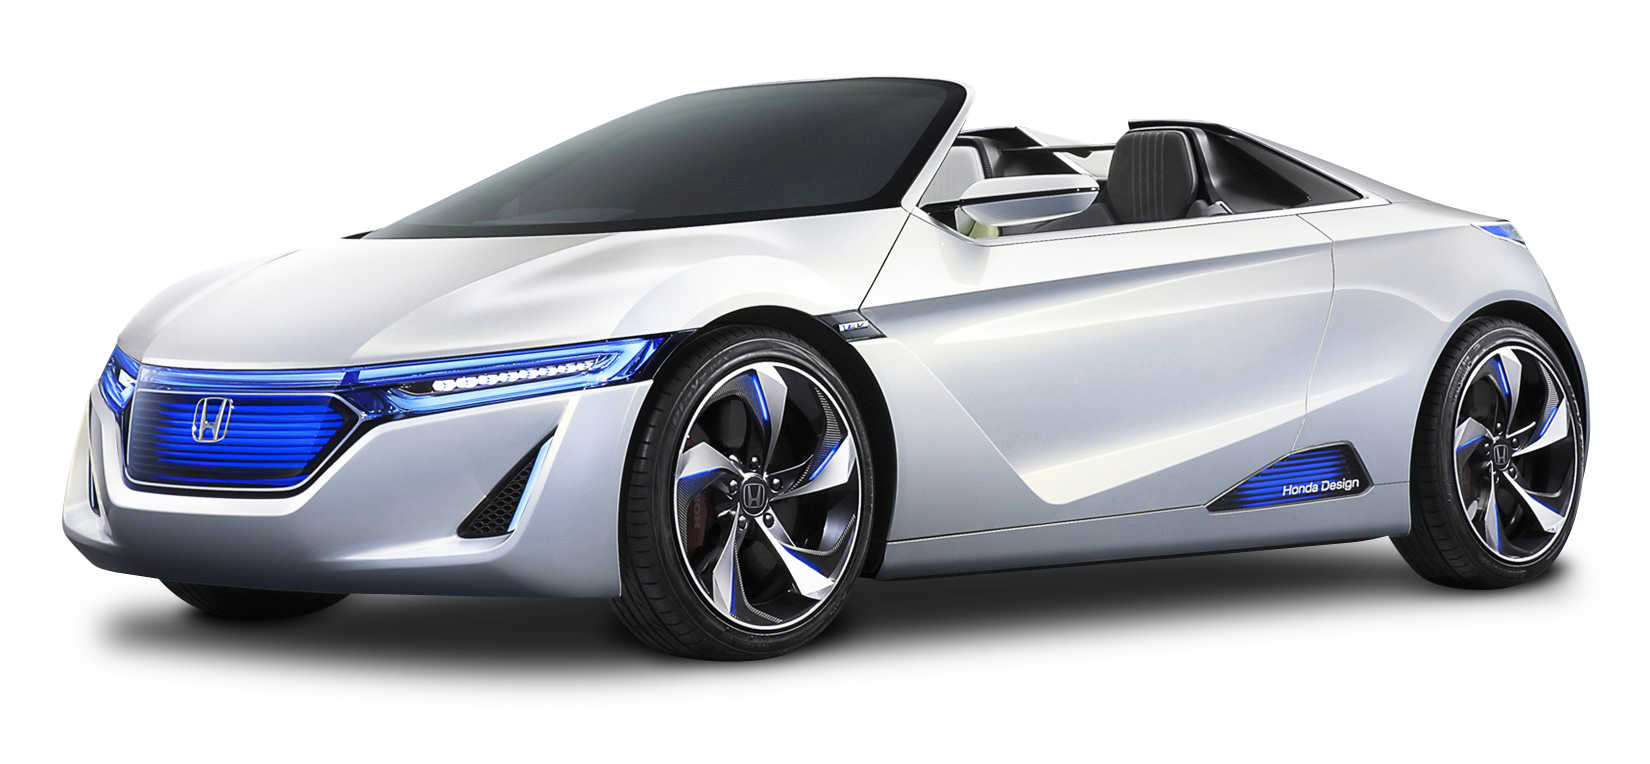 Sports Car Png Free - Honda EV Ster Electric Sports Car PNG Image - PurePNG | Free ...